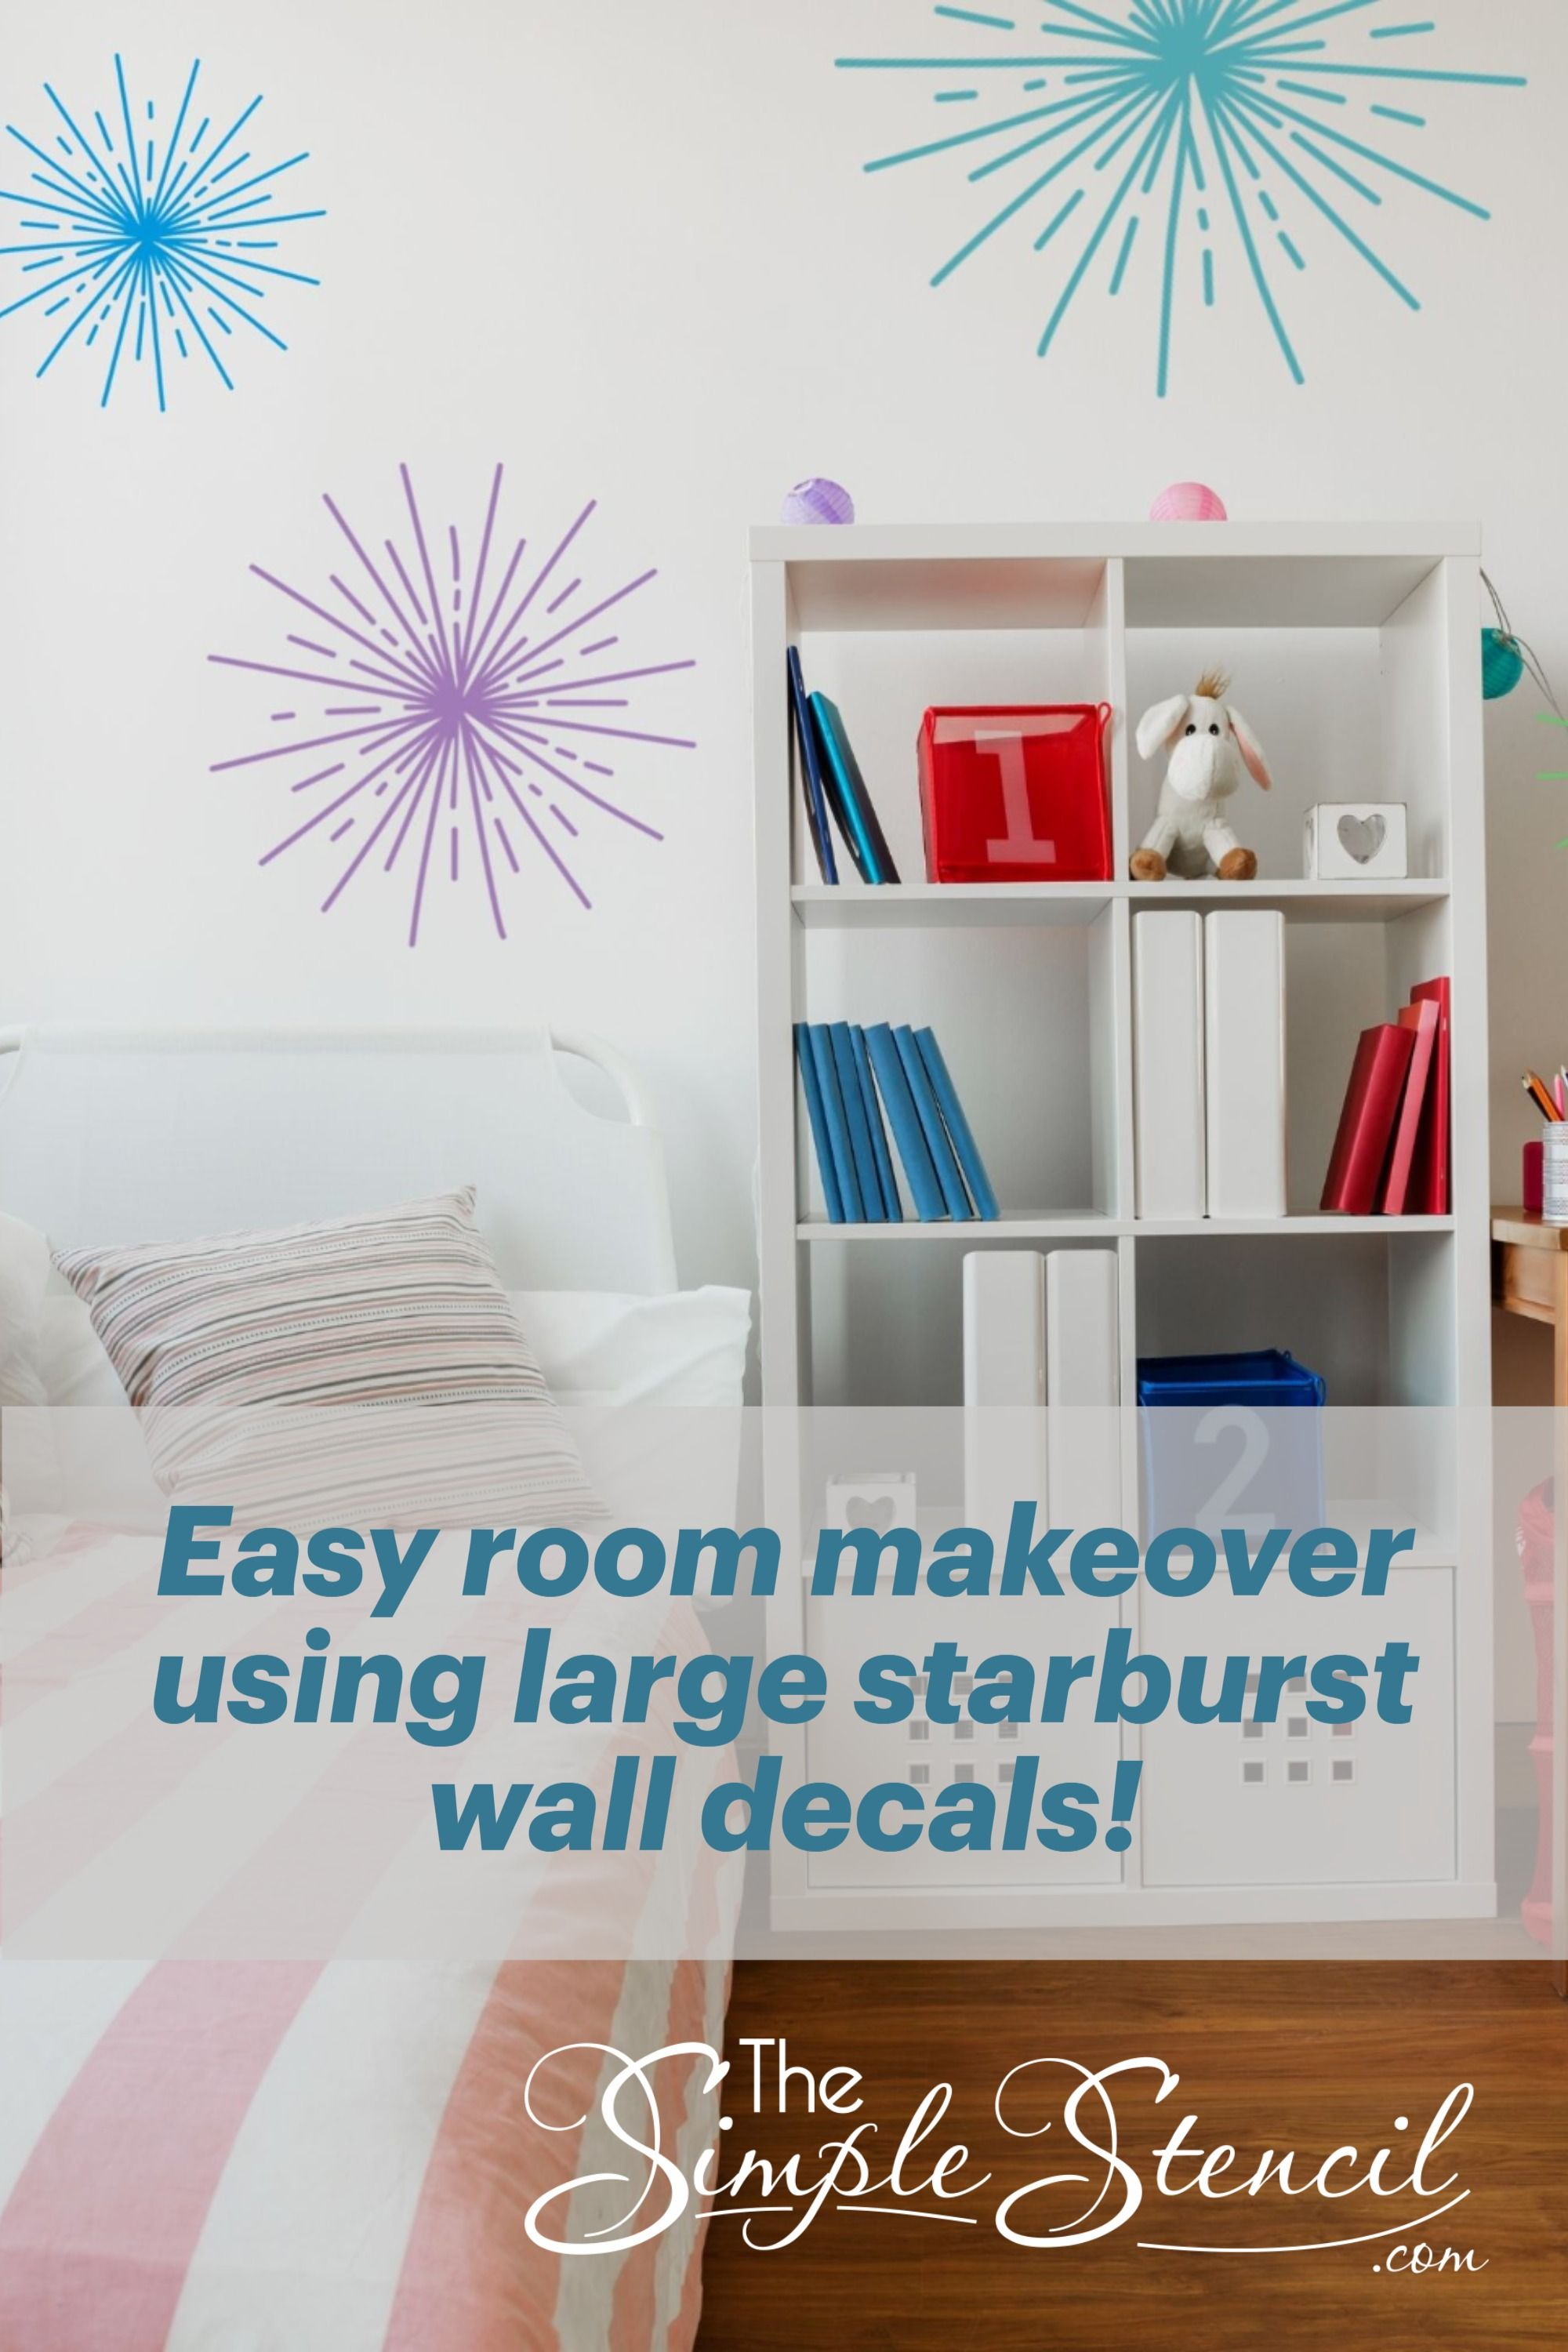 Bedroom Playroom Inspiring Wall Decor for Living Room Once Upon A Dream Beautiful Fairy Tale Quote in Vinyl Lettering